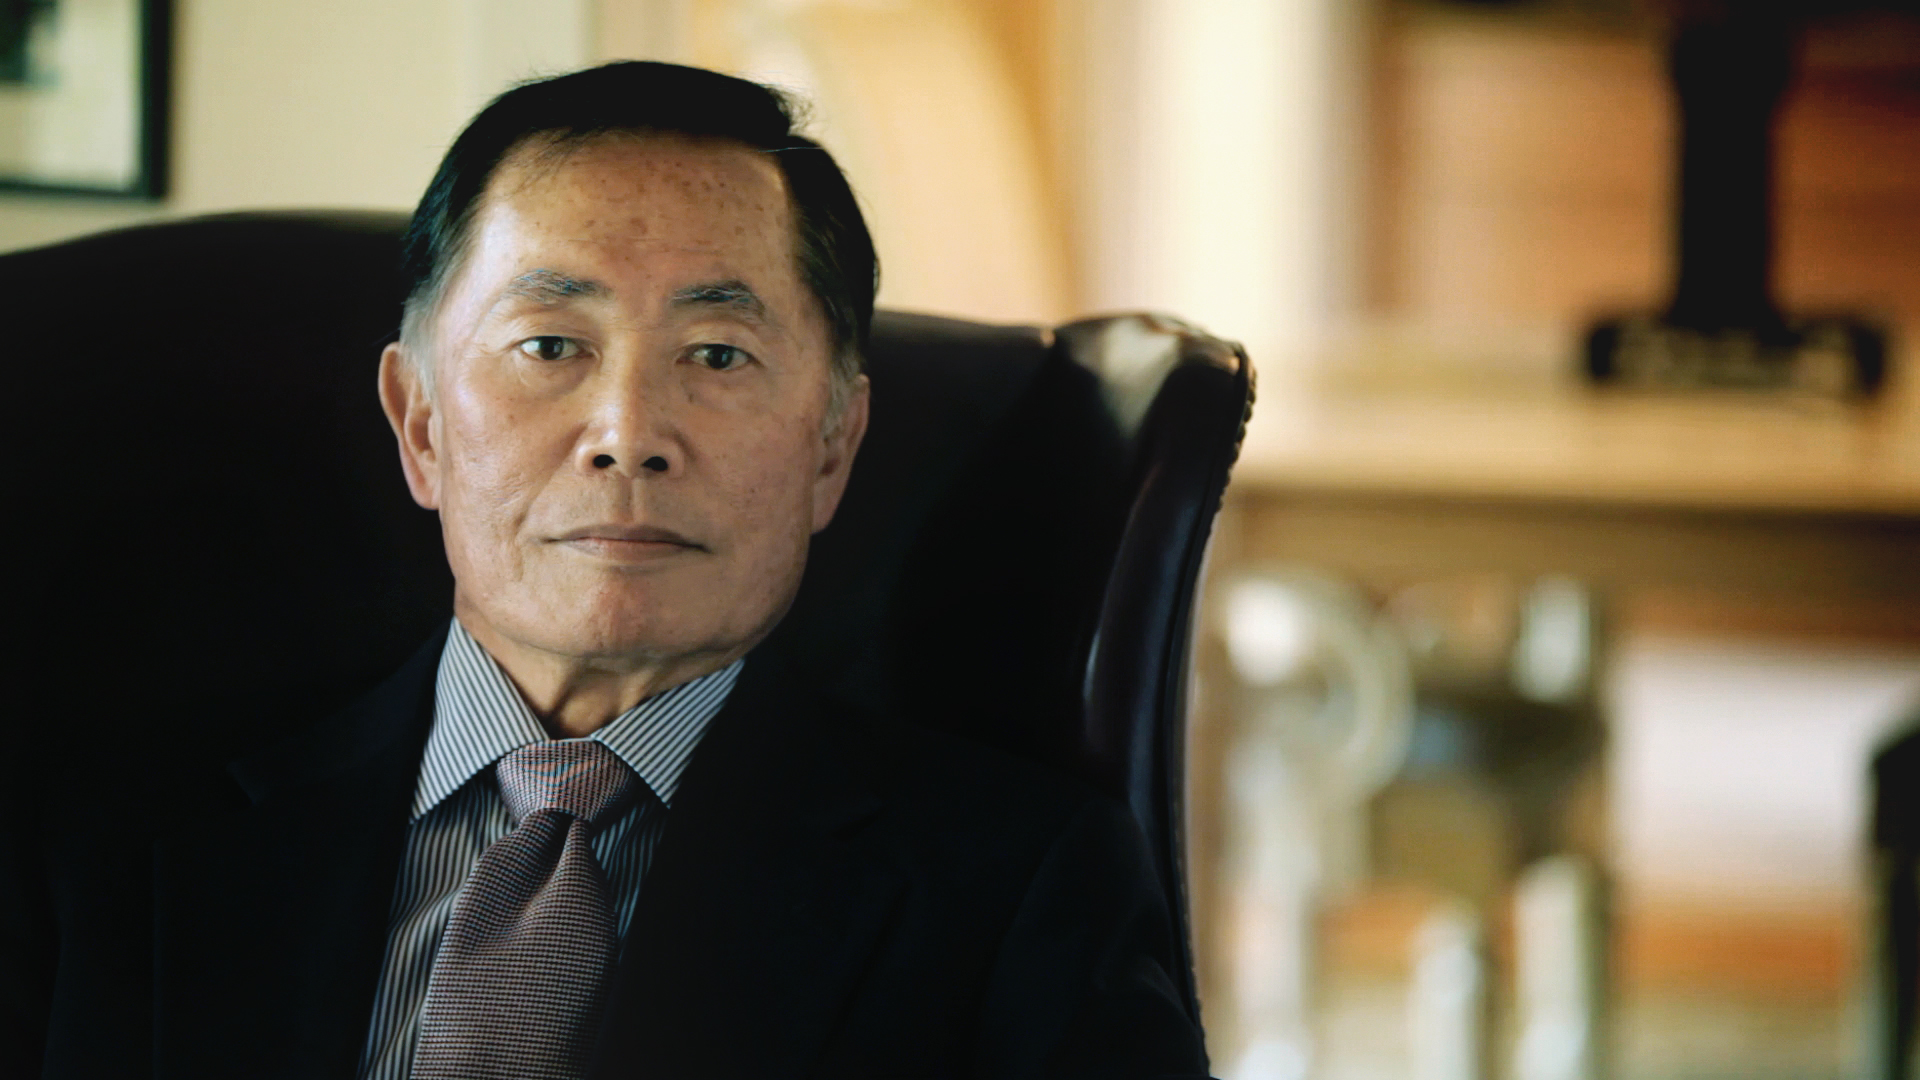 Shooting George Takei in his home as he accepts the LGBT Humanist Pride Award